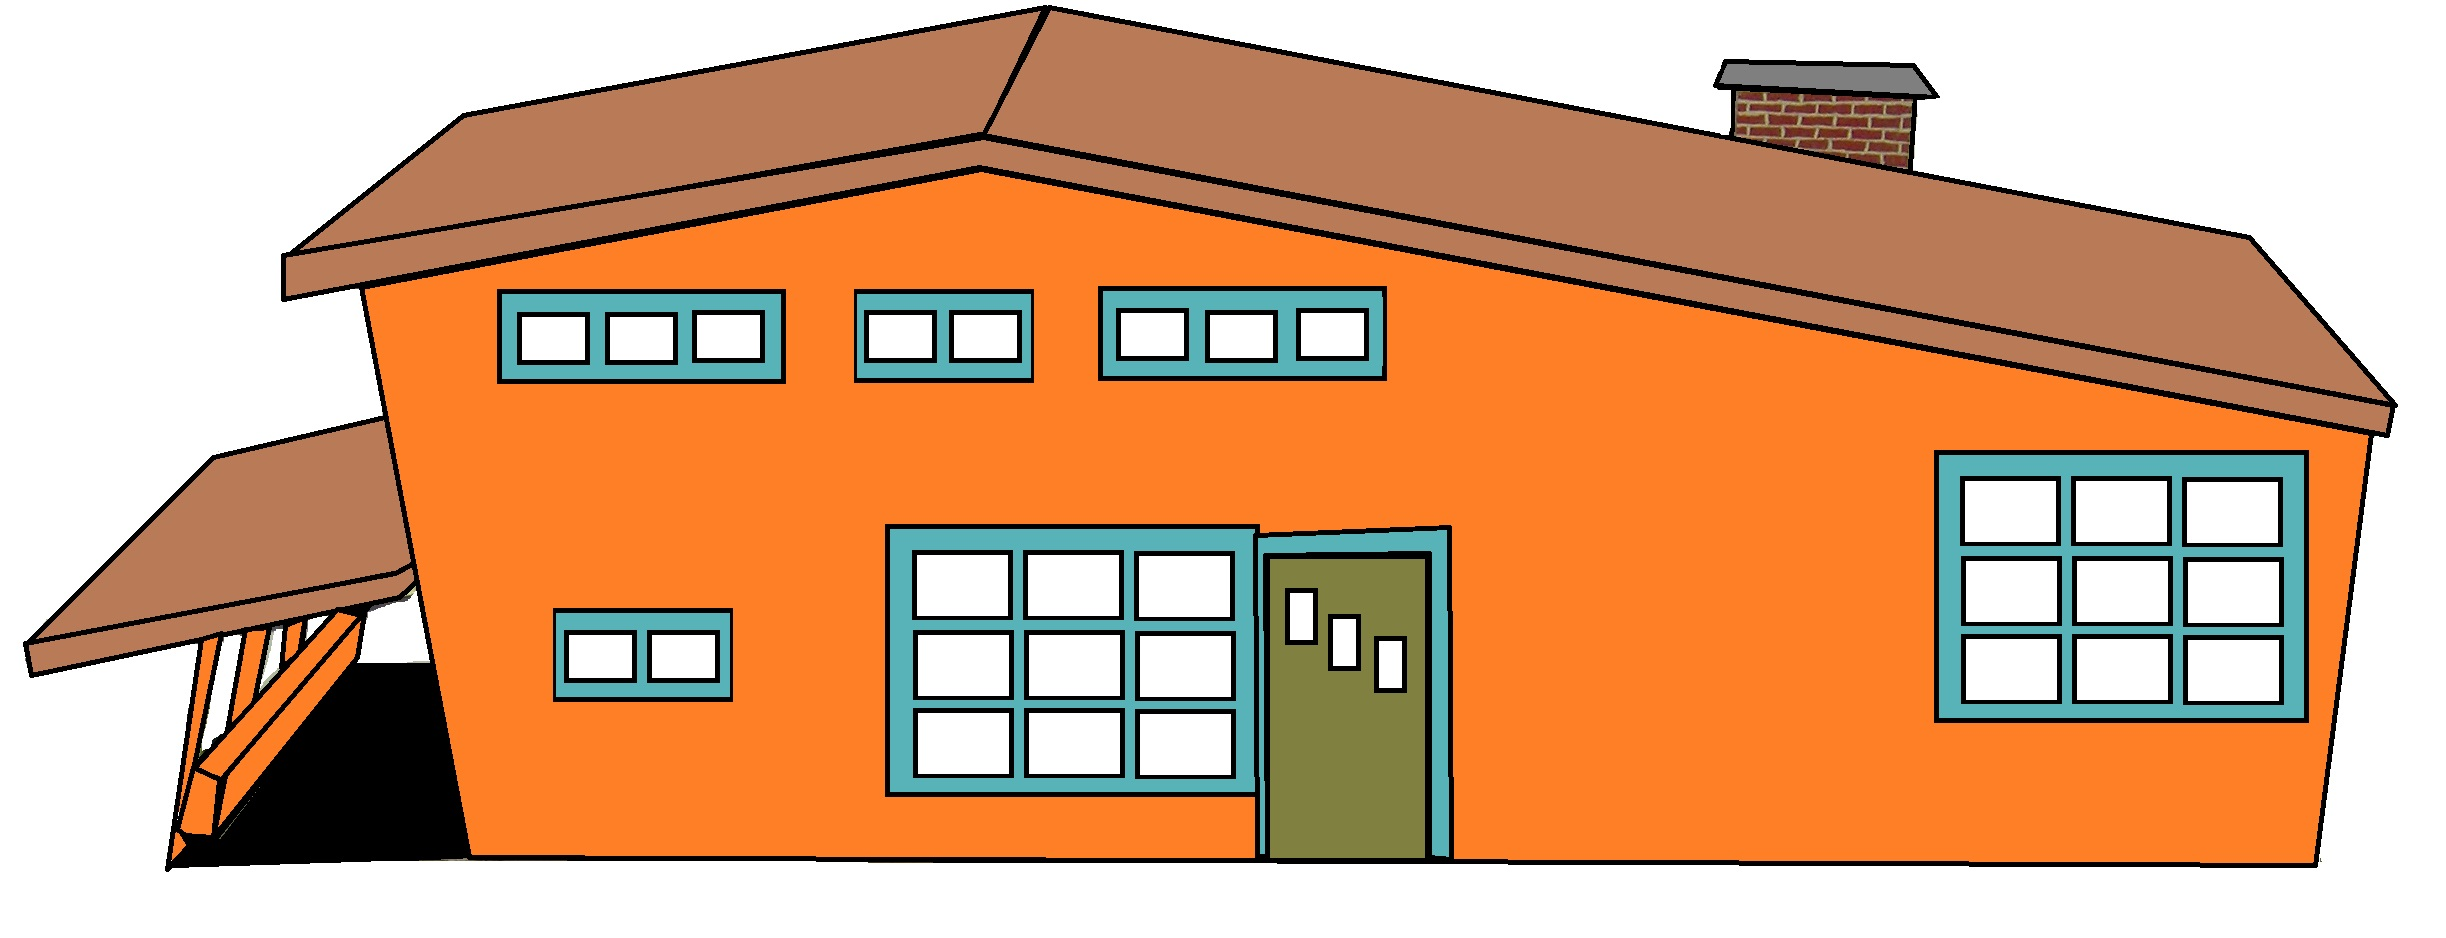 Interior Designs clipart my house Modern Paint Mid Home idolza